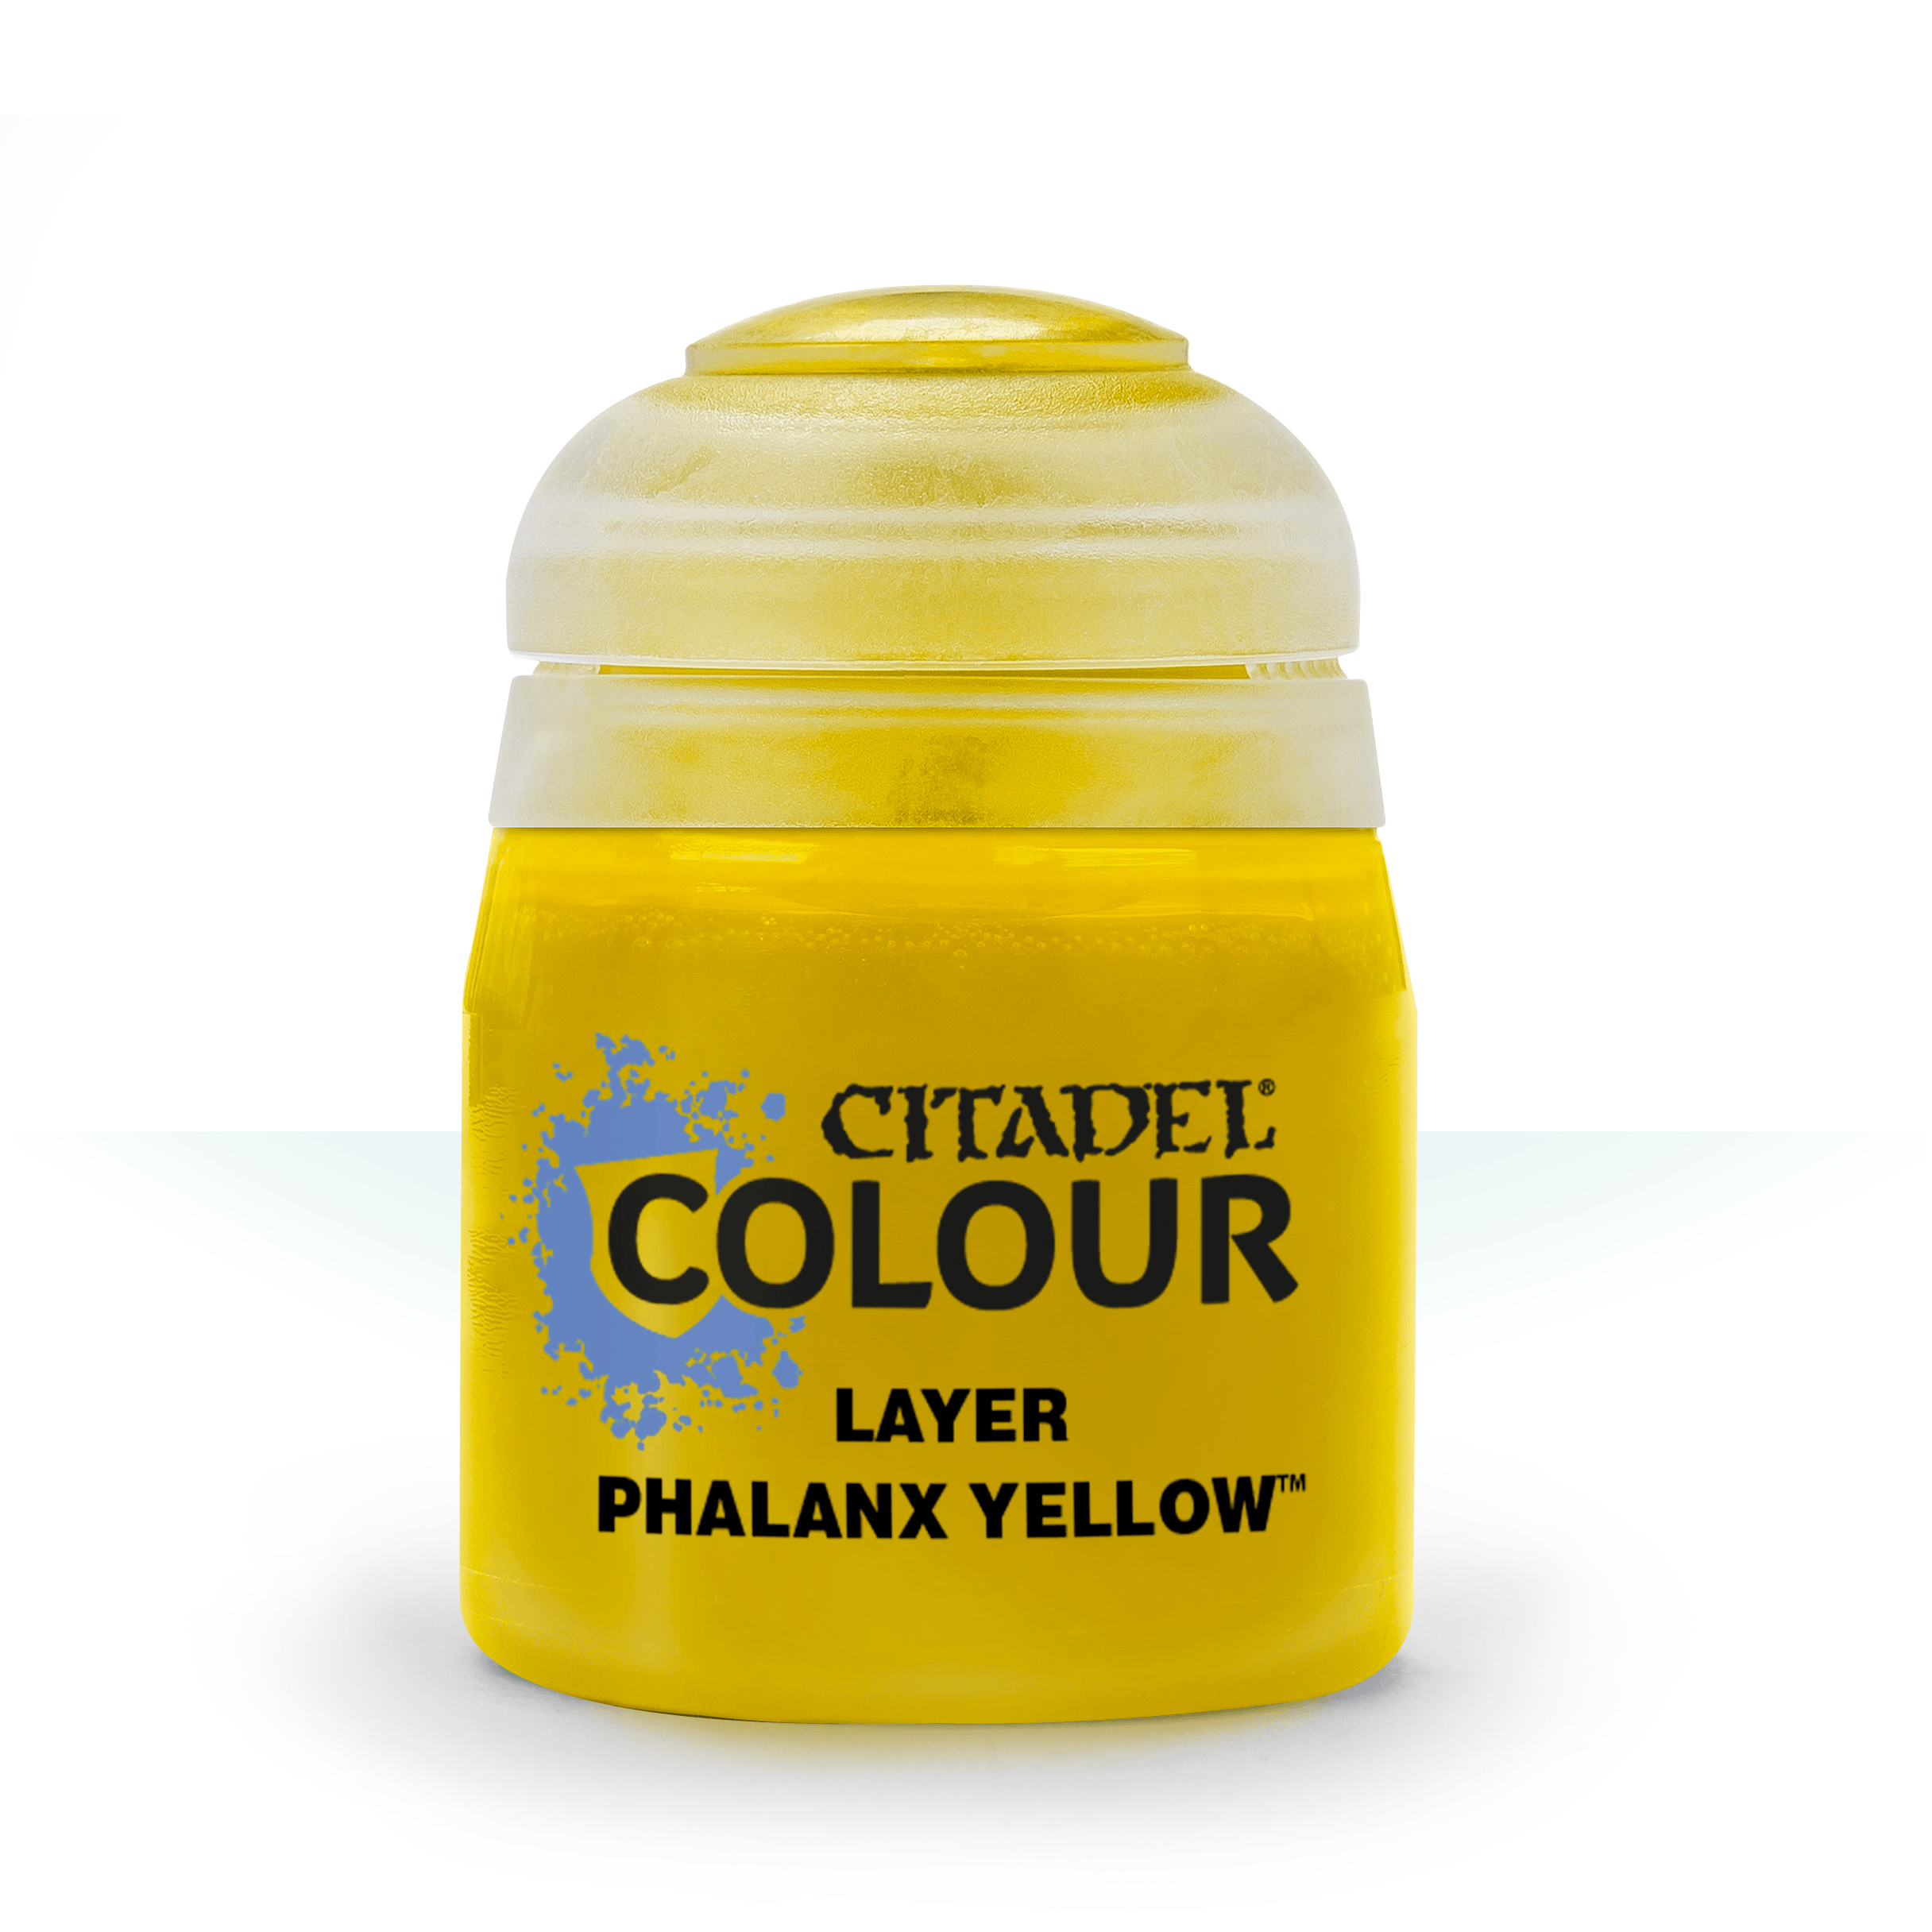 Citadel Layer Paints: Phalanx Yellow